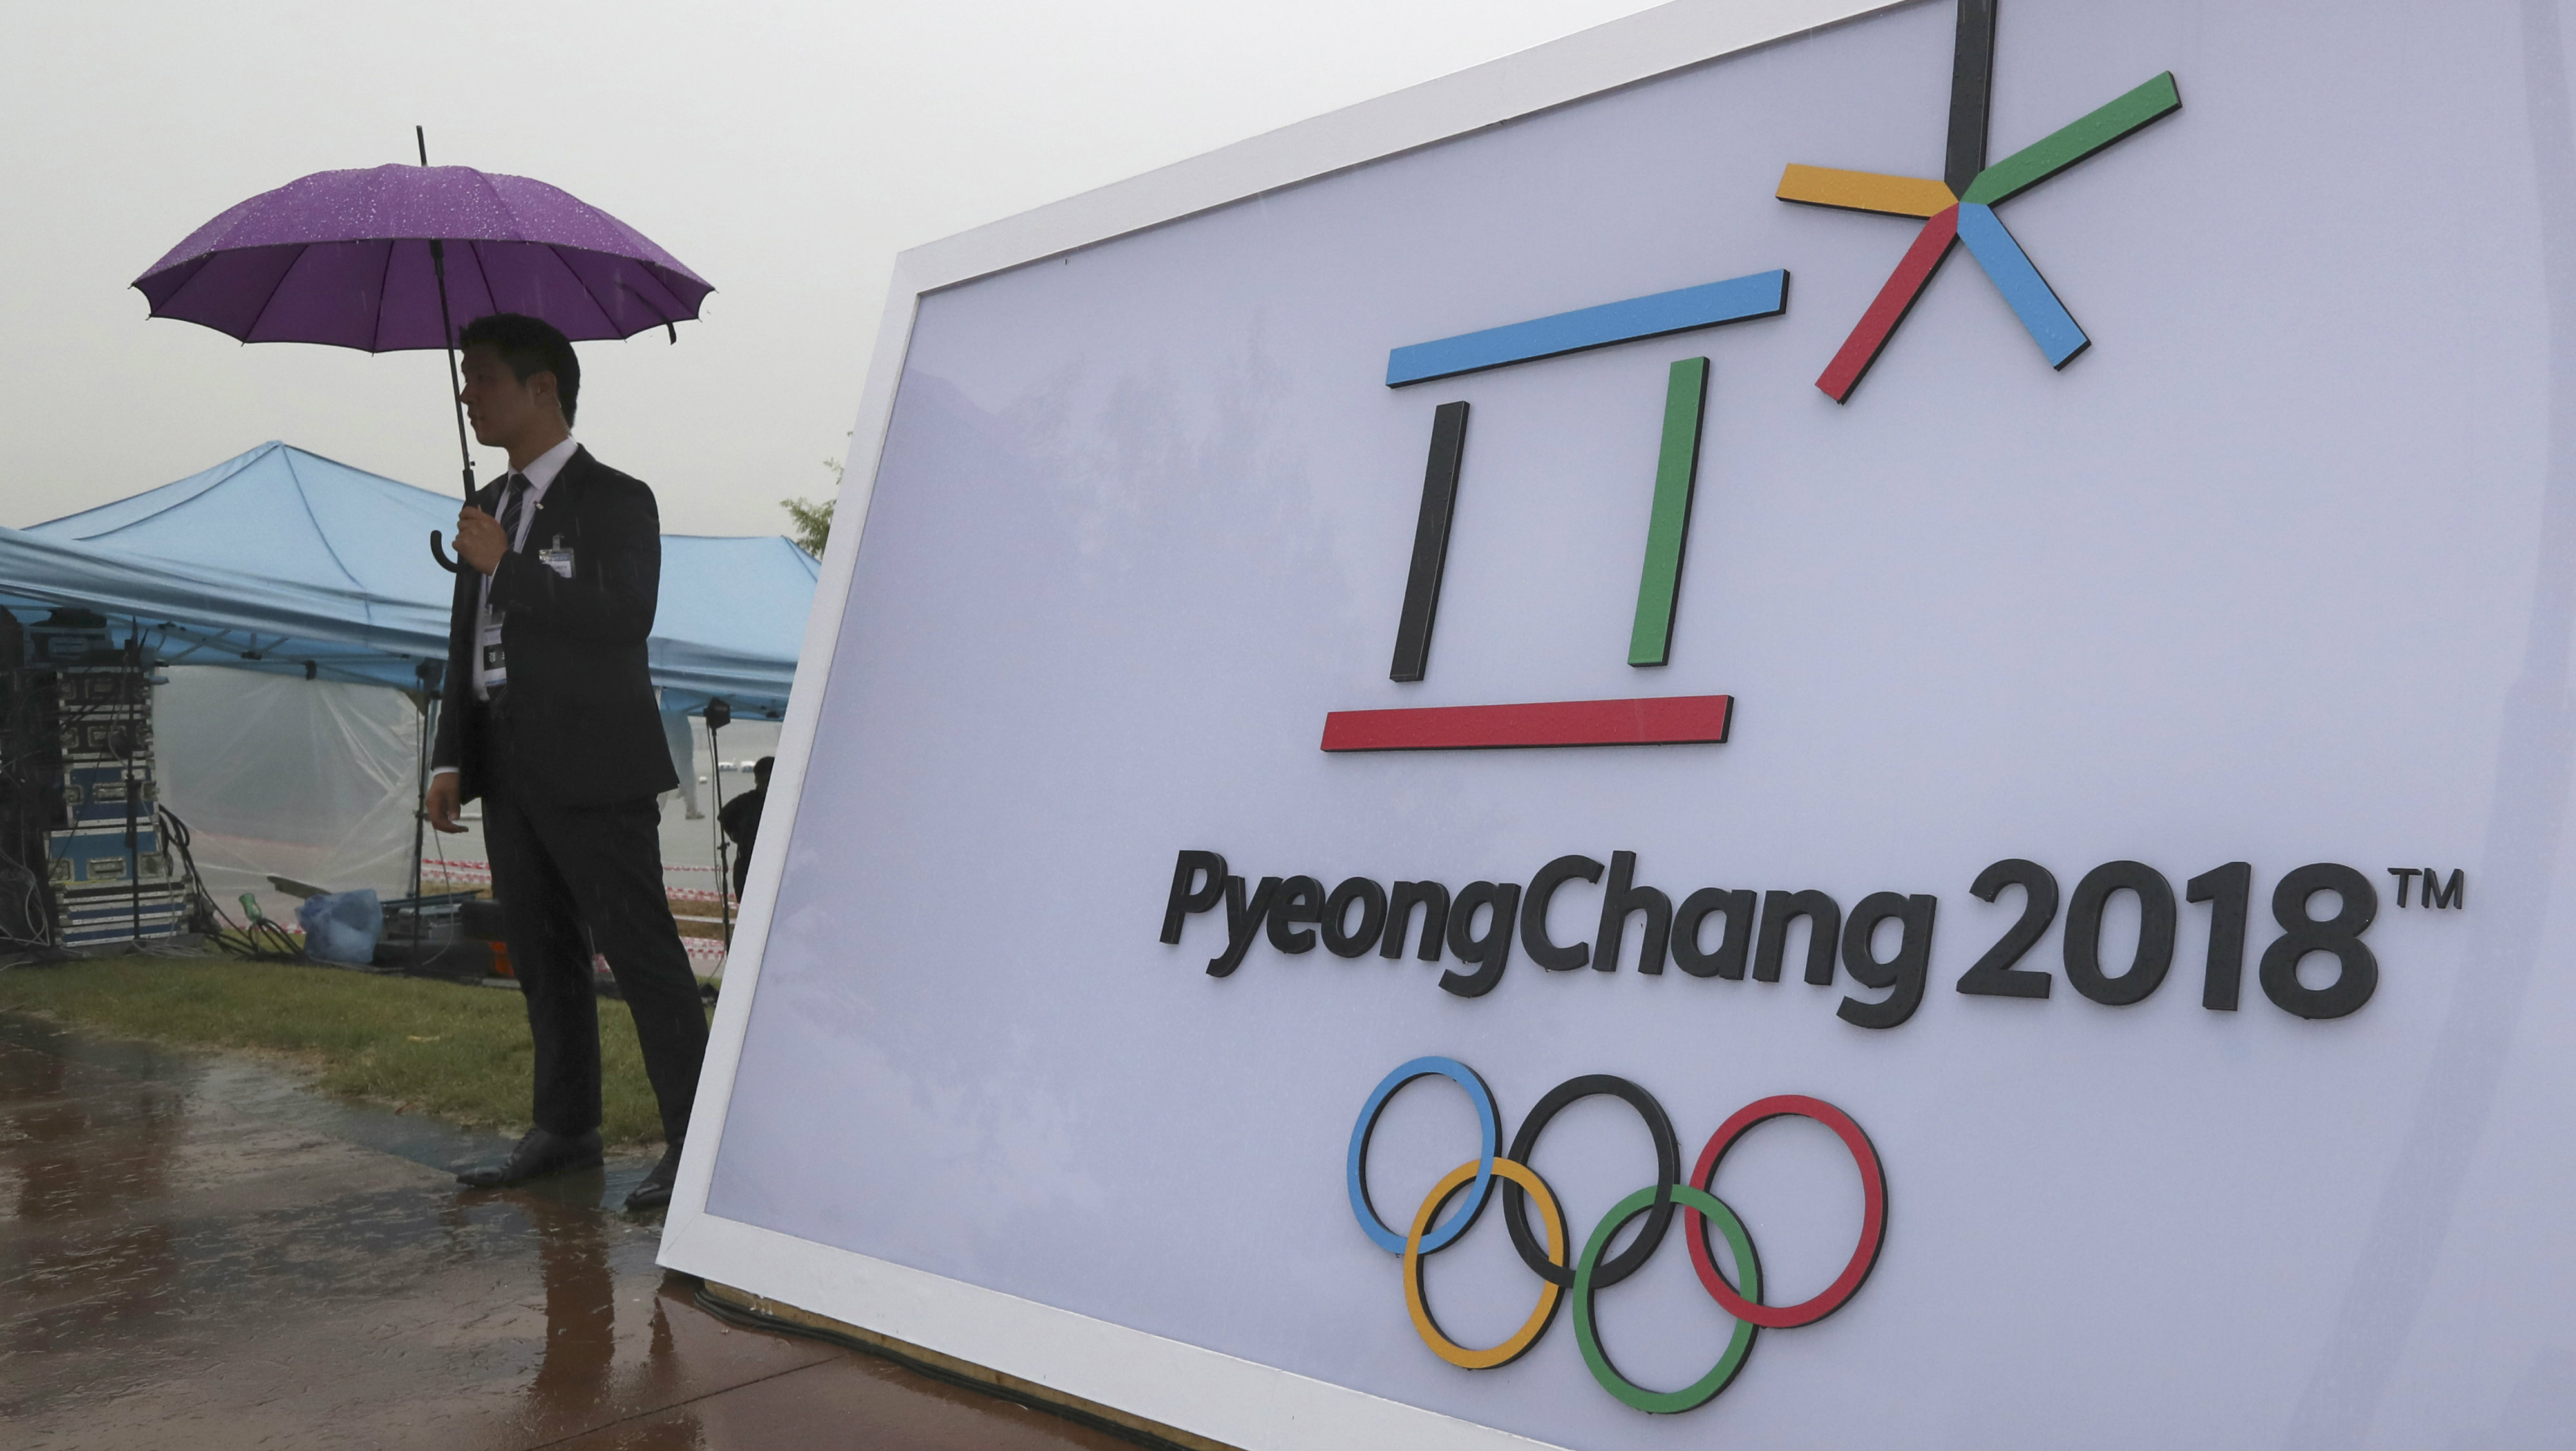 Security personnel stands by a logo of the 2018 PyeongChang Olympic Winter Games before an event to mark the start of the 500-day countdown in Seoul, South Korea, Tuesday, Sept. 27, 2016.